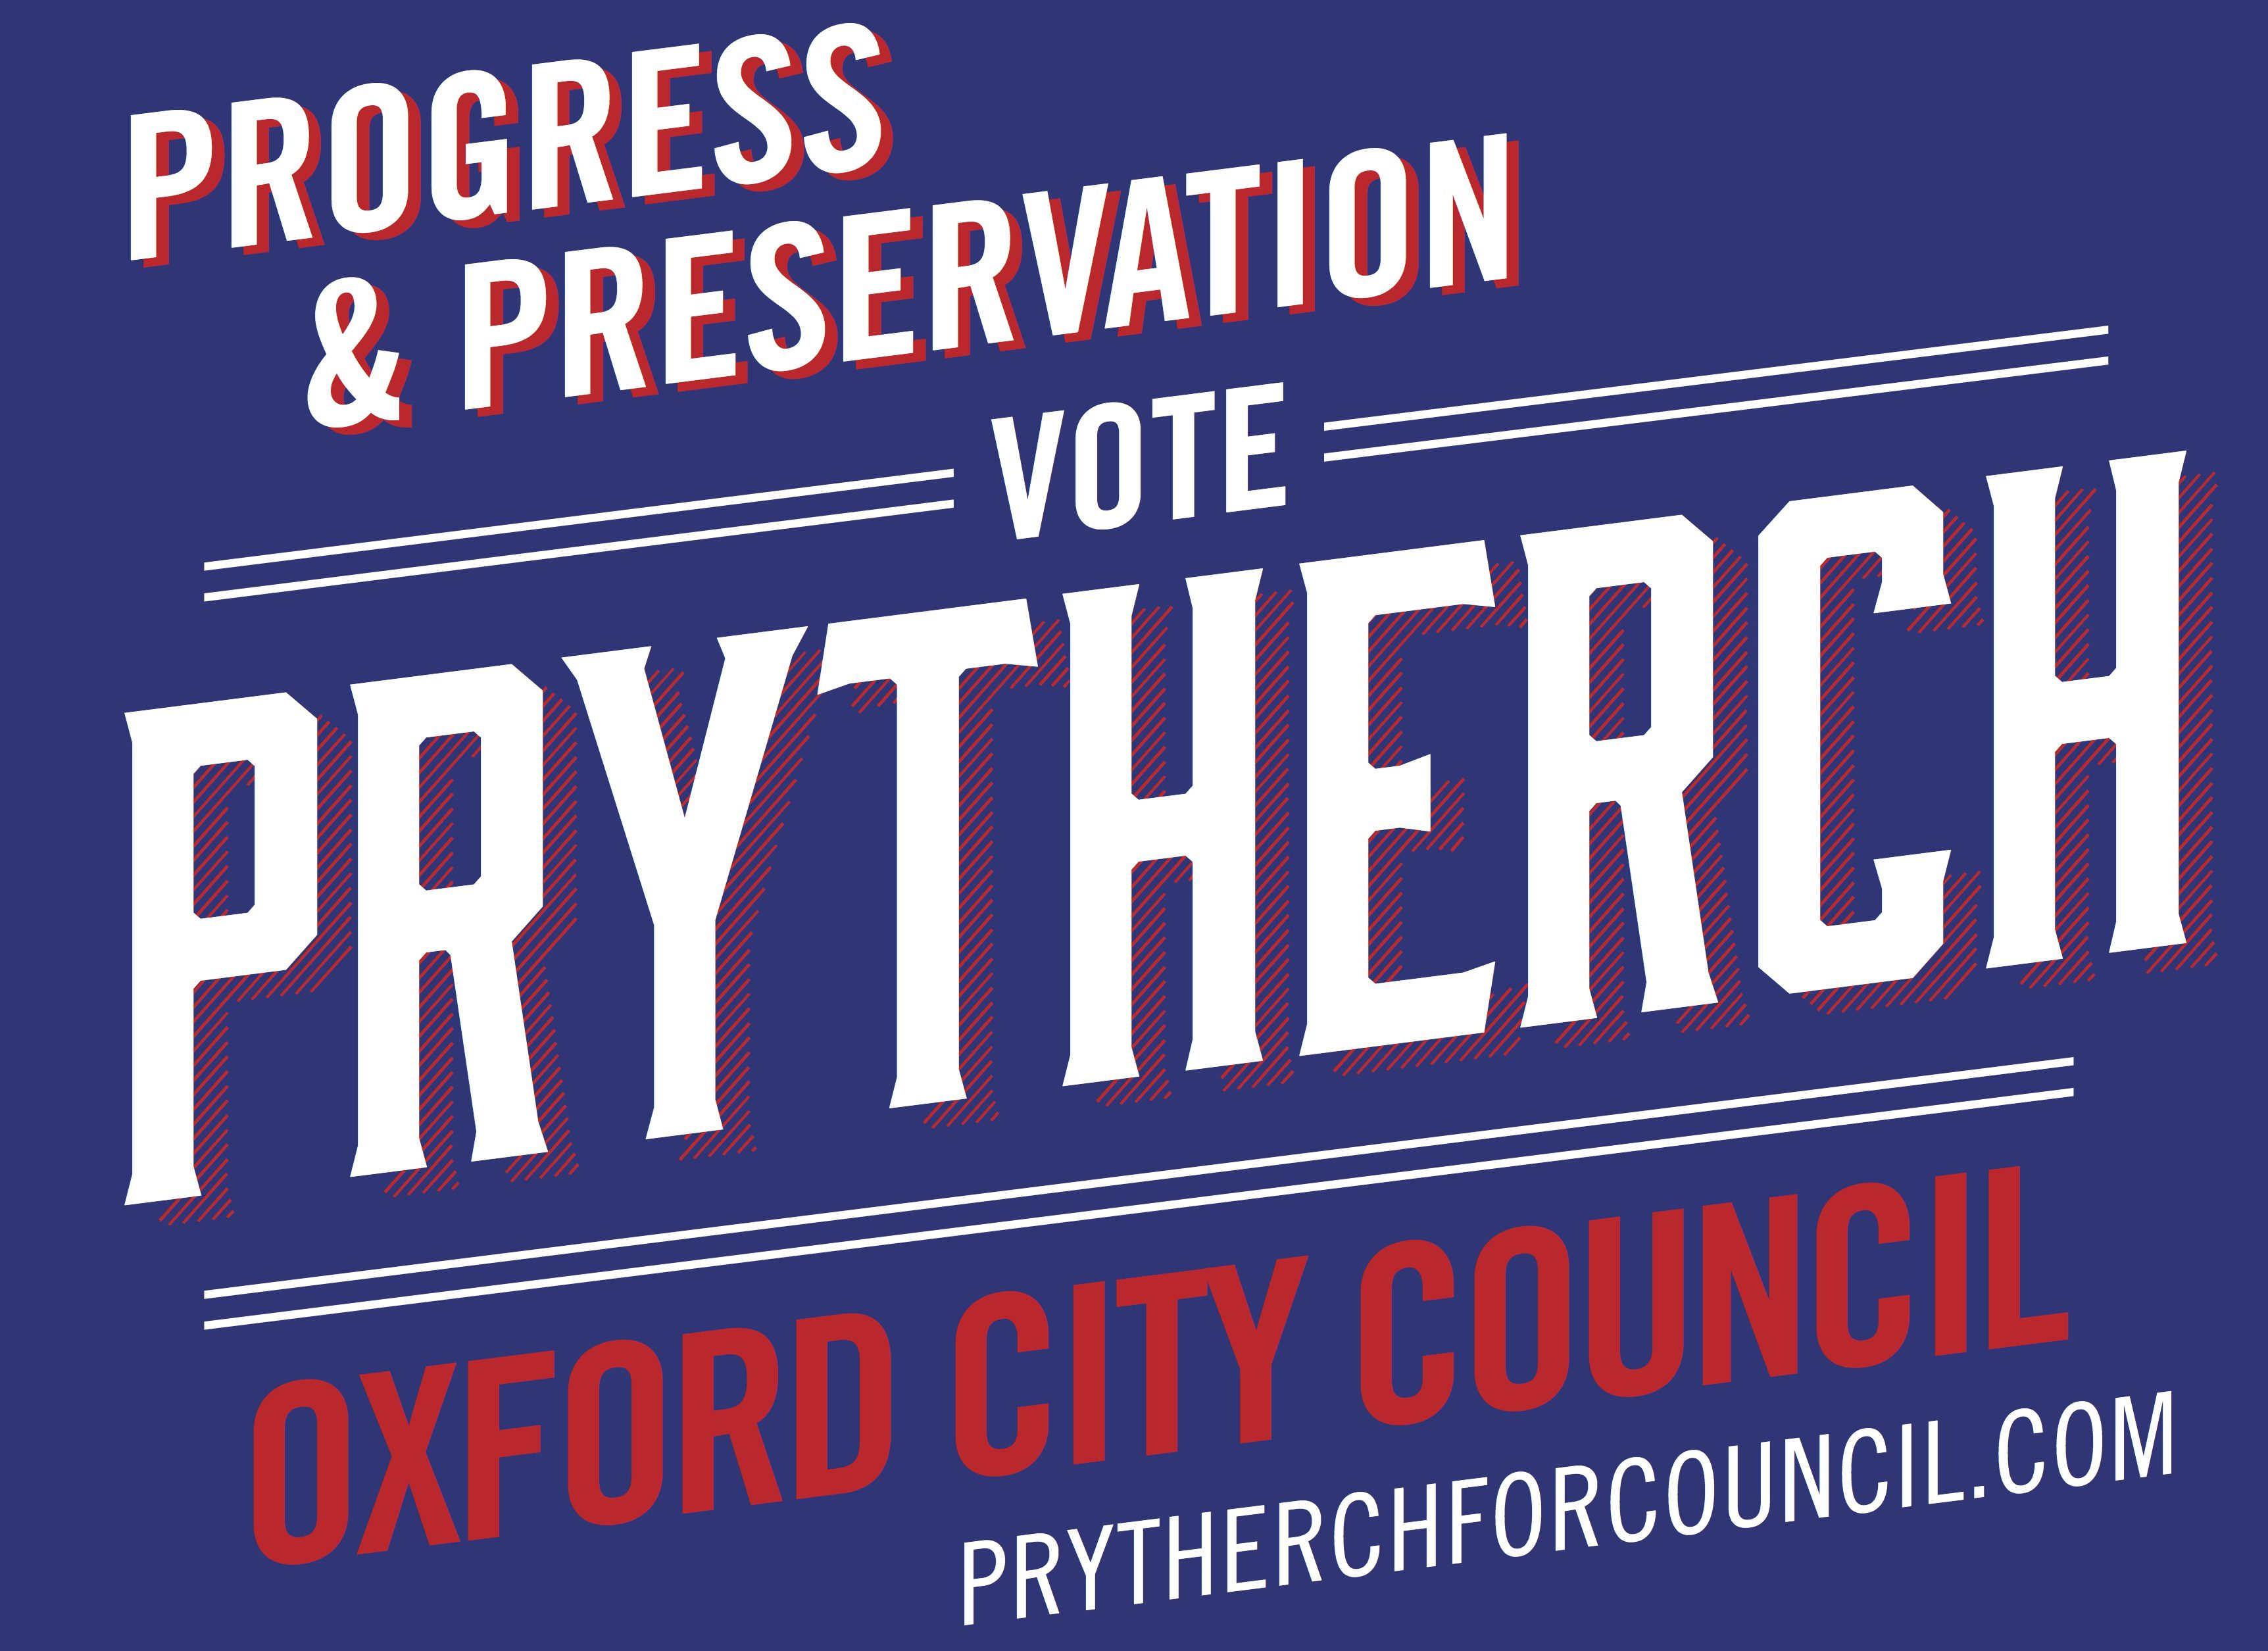 David Prytherch, Councilor